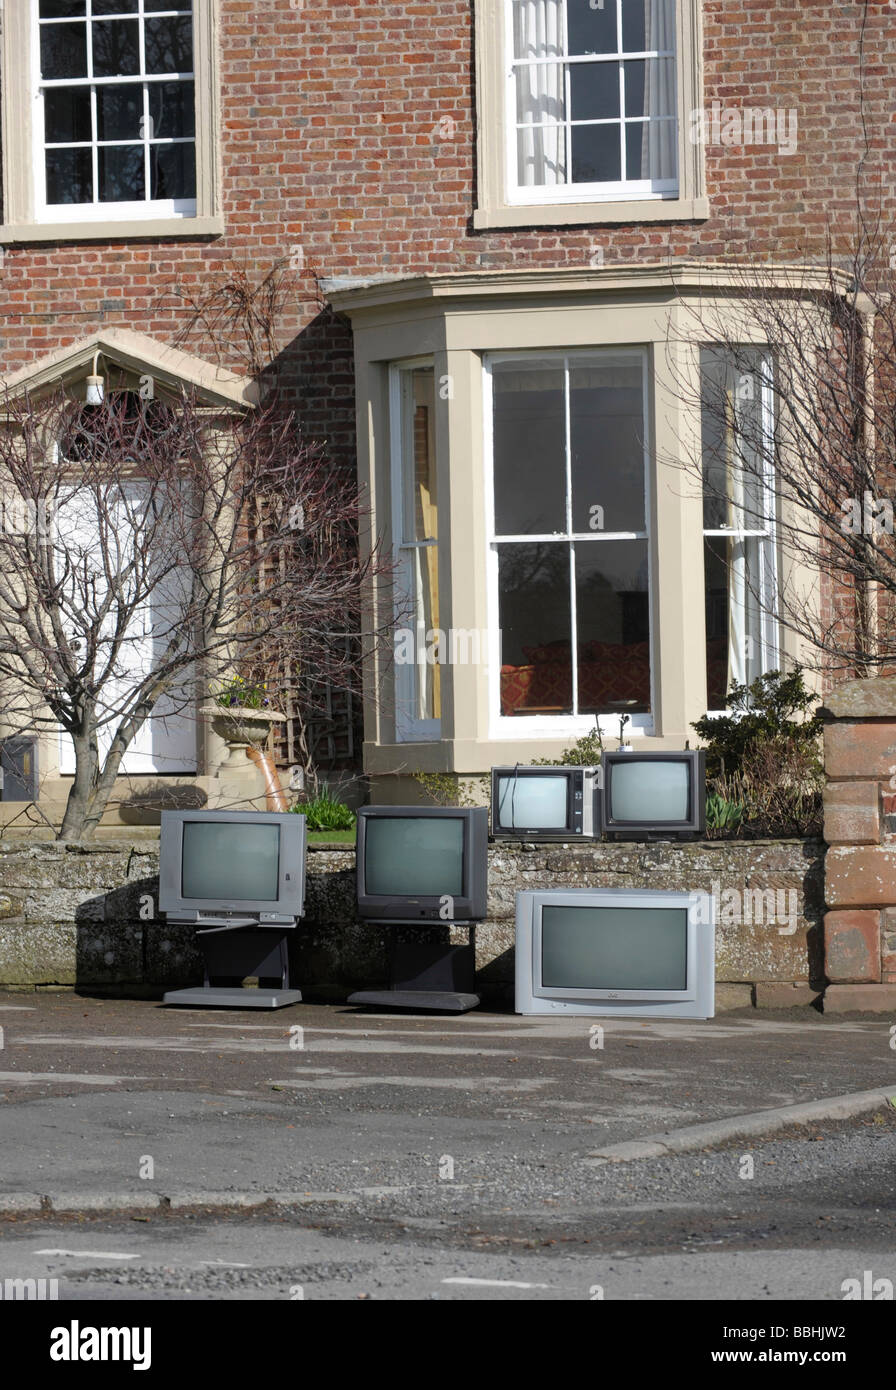 Old unwanted television TV sets not suitable after the digital switchover when analogue signal is switched off and - Stock Image